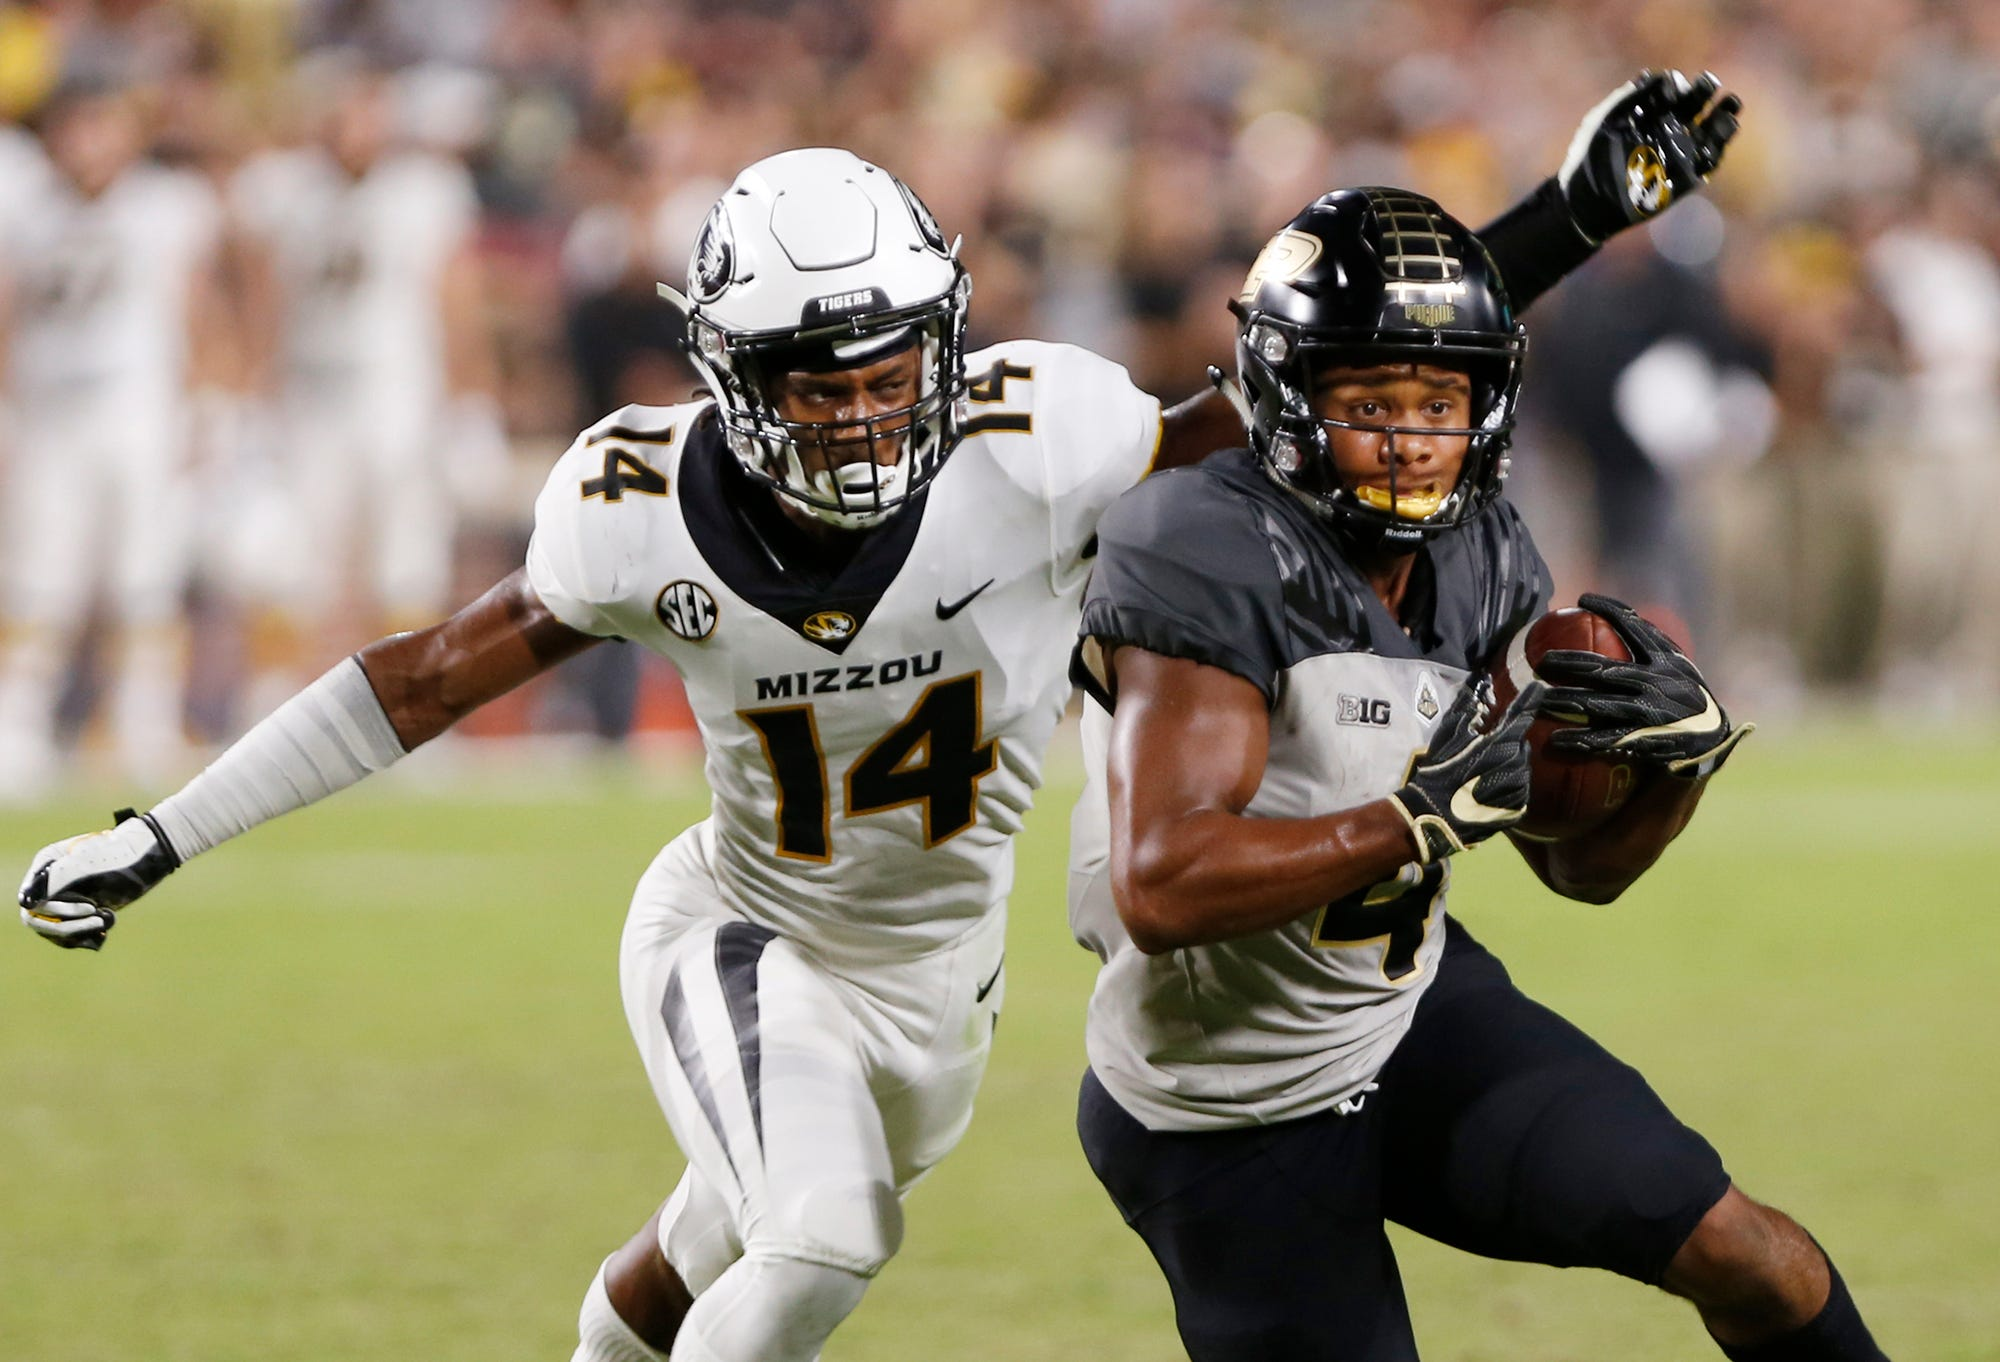 Rondale Moore of Purdue with a pass reception in front of Adam Sparks of Missouri in the second half Saturday, September 15, 2018, in West Lafayette. Purdue lost 40-37 on a Missouri field goal as time expired. Missouri defeated Purdue 40-37 on Tucker McCann's field goal as time expired.